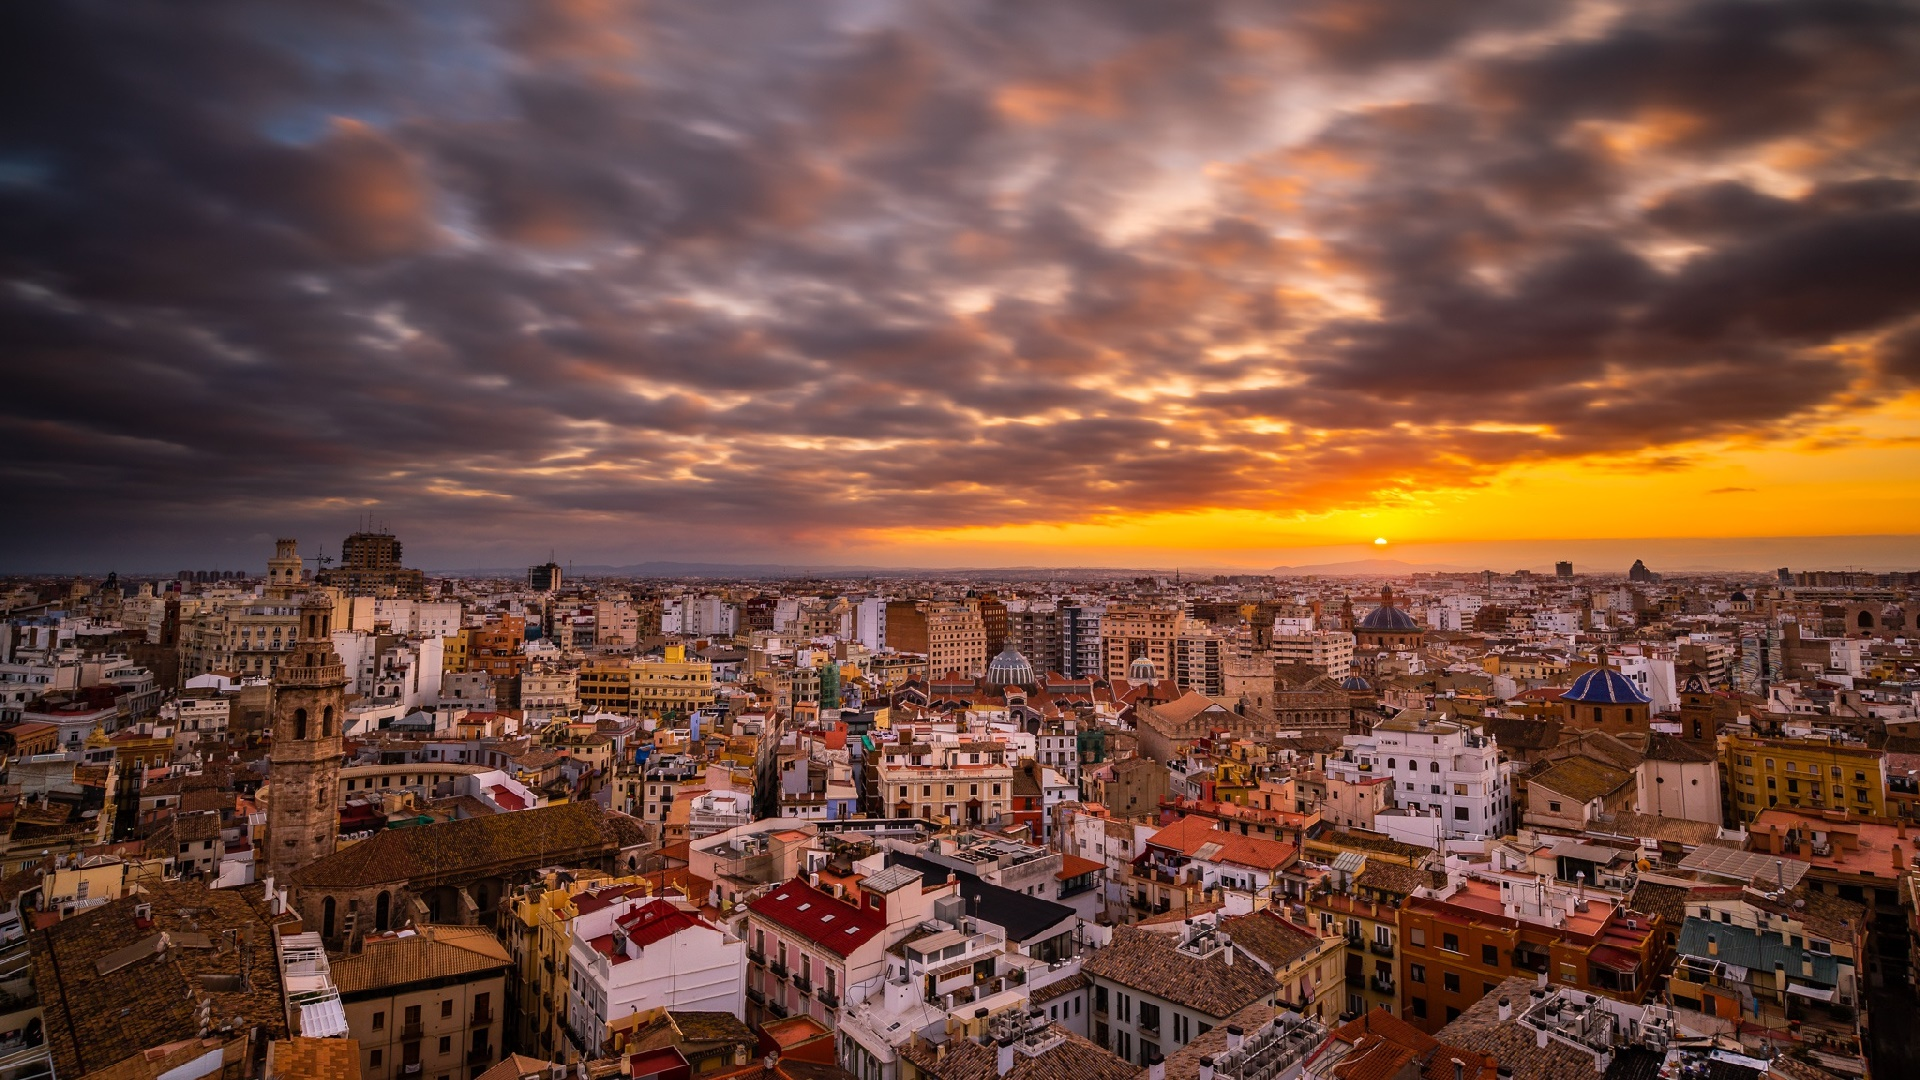 Cloudy Sunset Sky Over Valencia, Spain HD Wallpaper